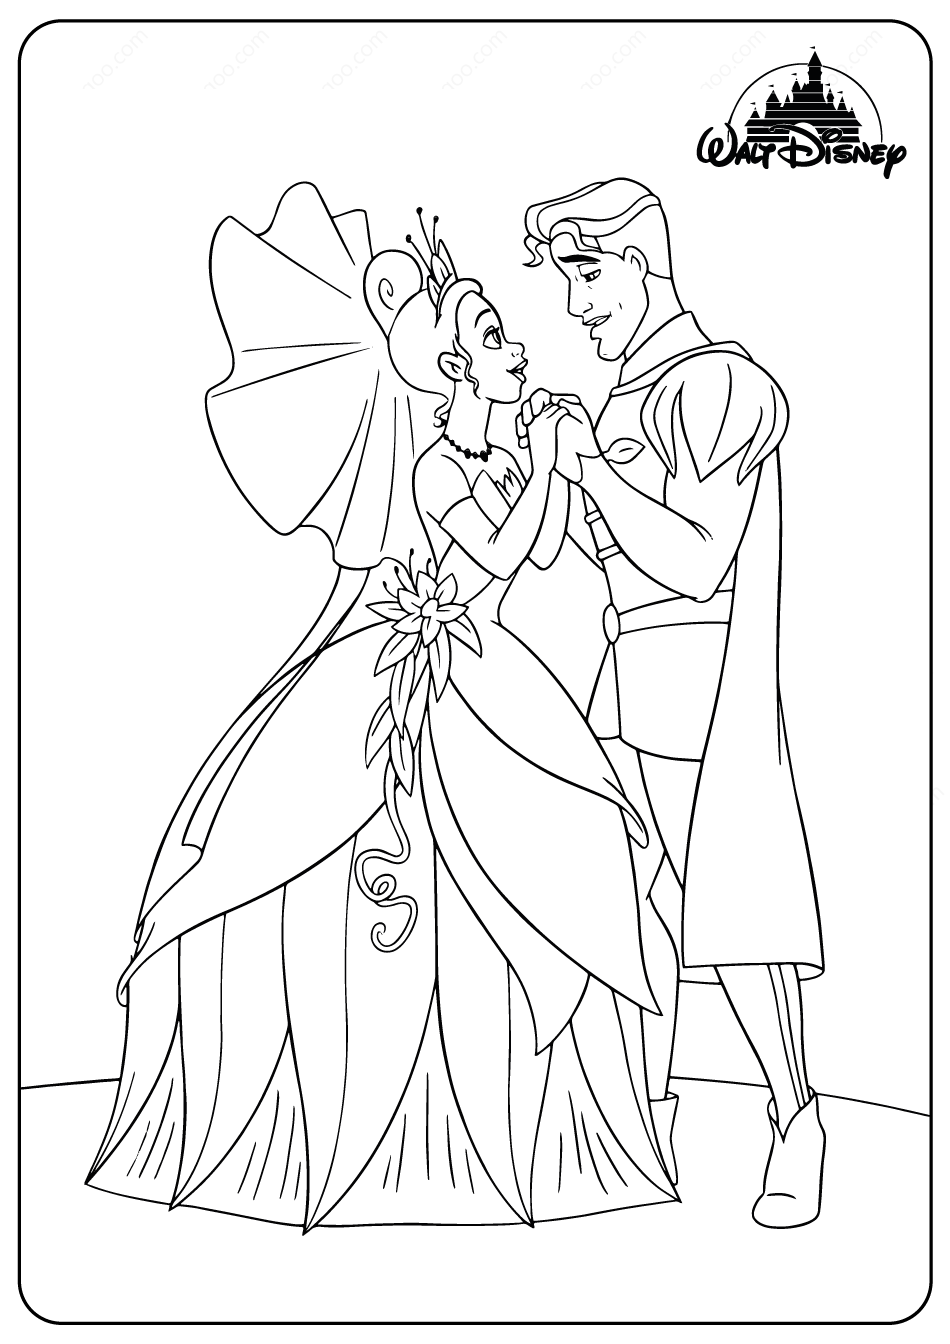 Disney Tiana And The Prince Coloring Pages In 2020 Princess Coloring Pages Disney Princess Coloring Pages Princess Coloring